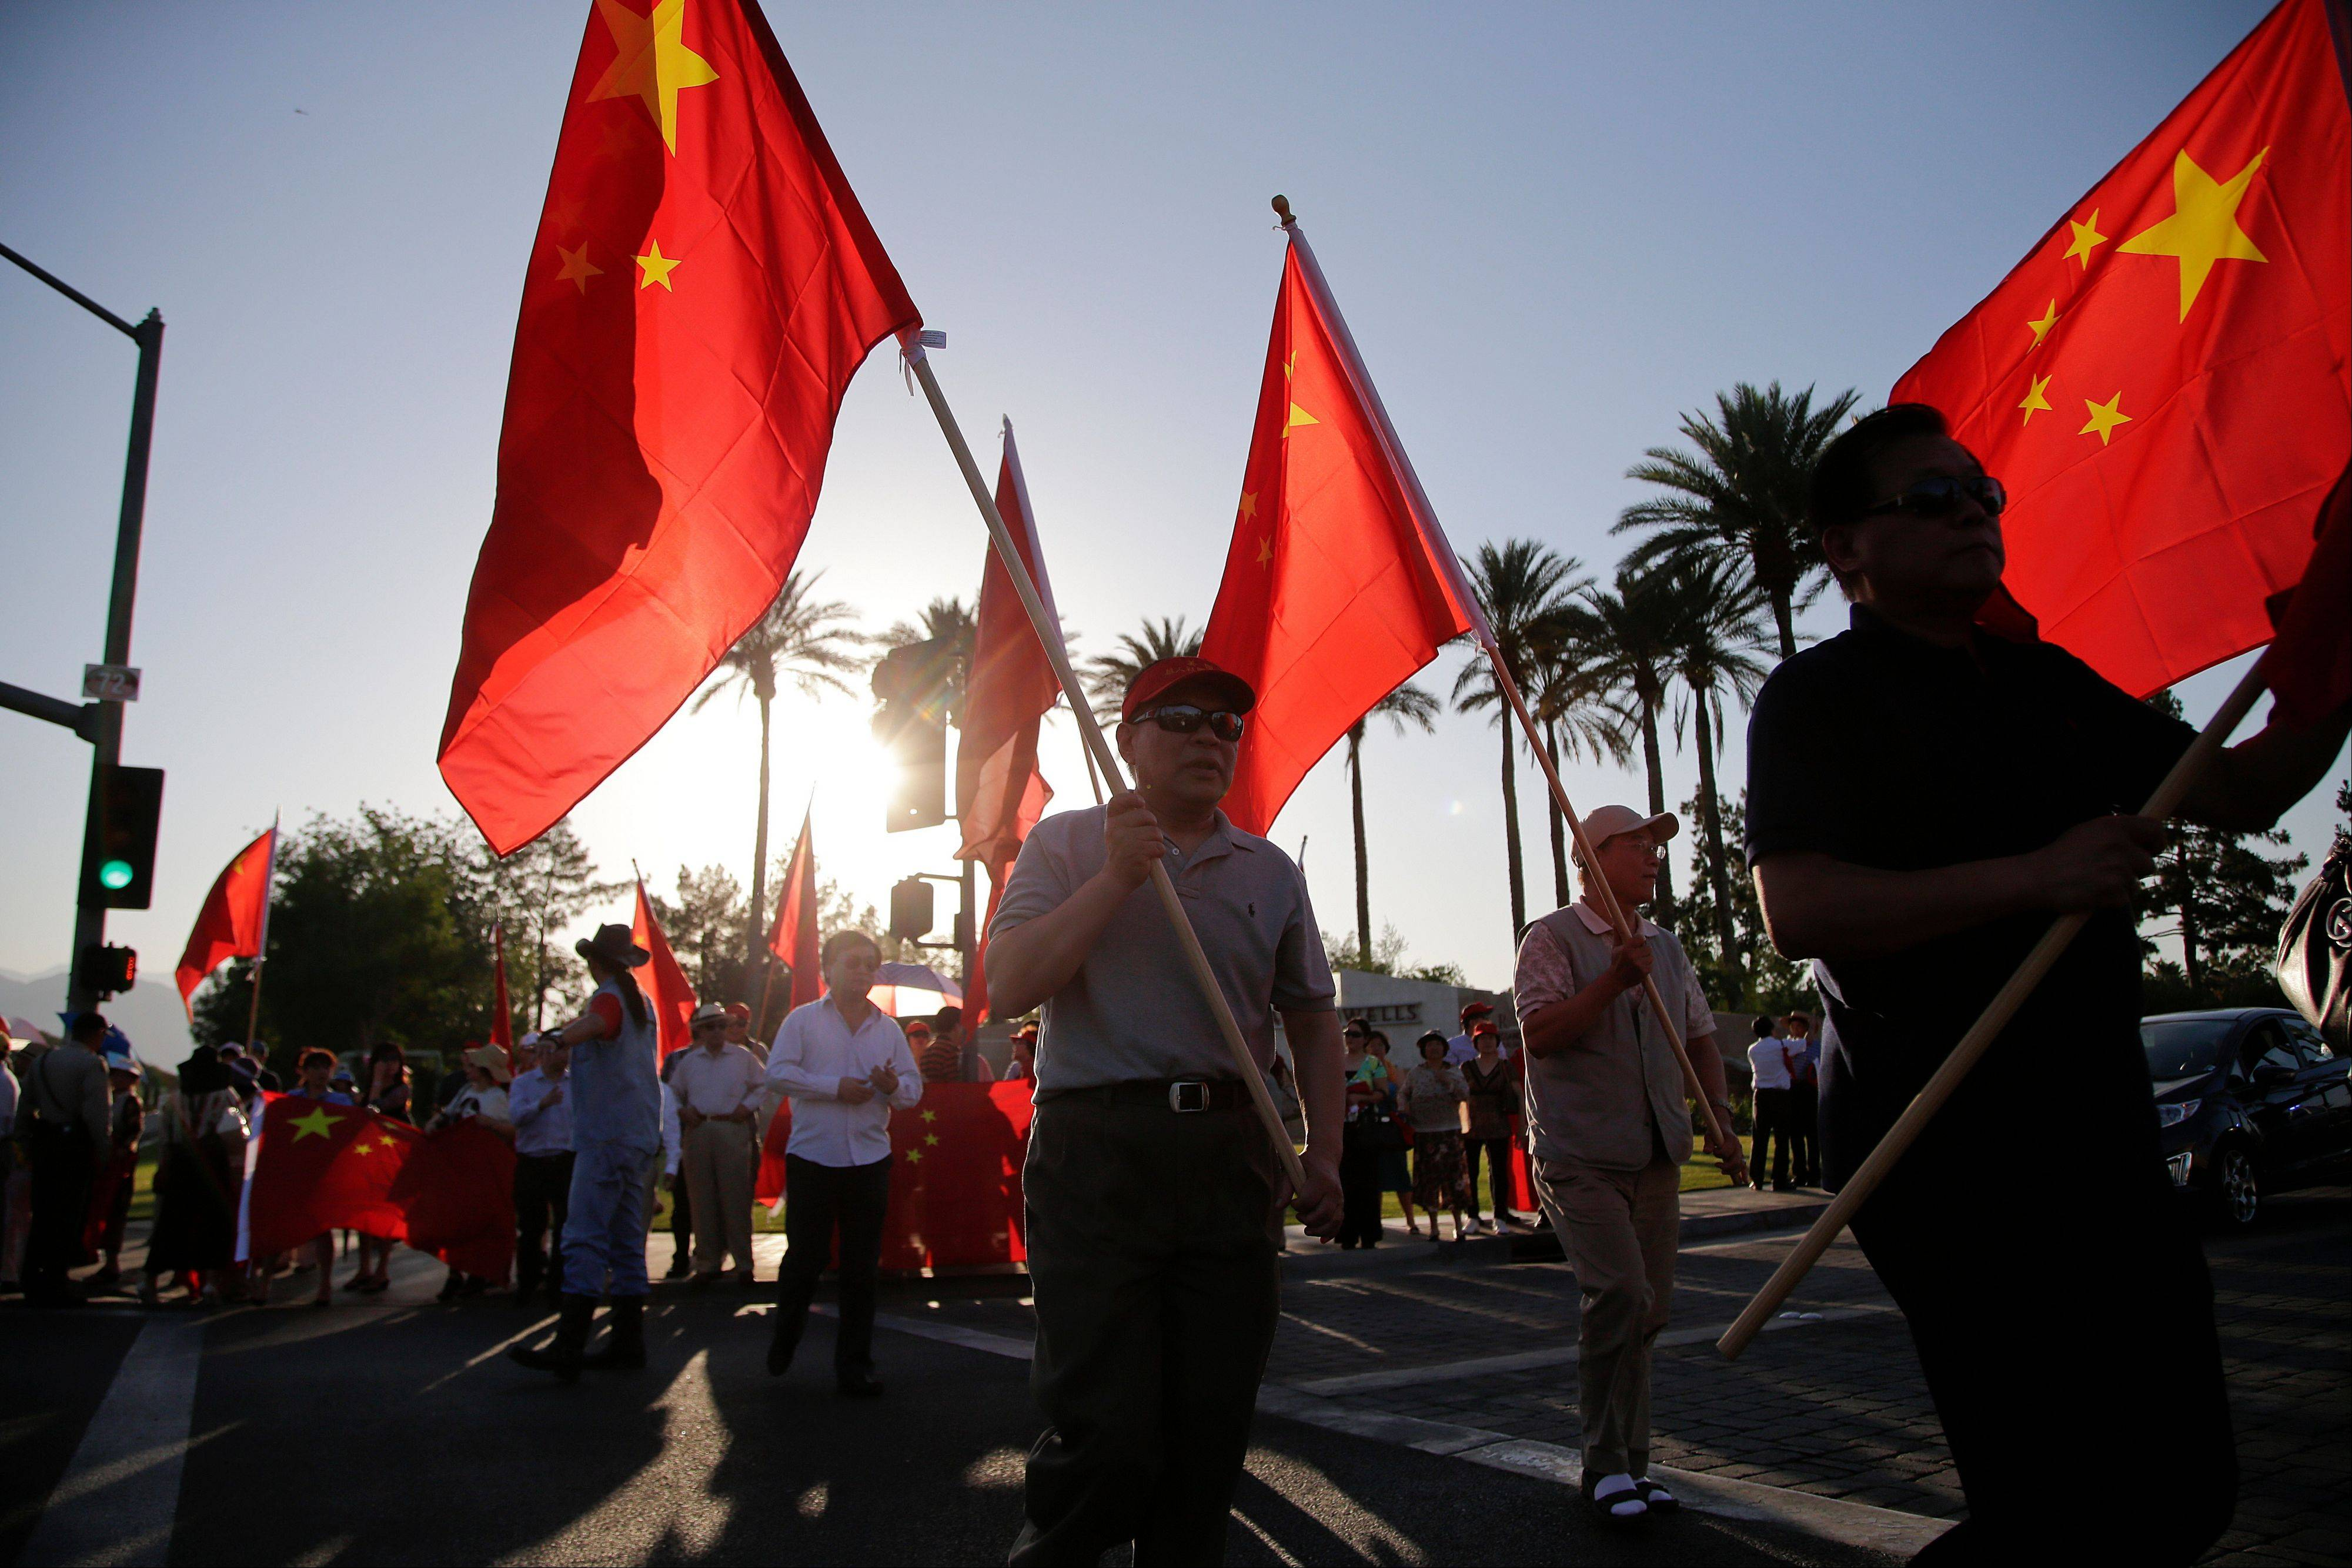 Supporters of Chinese President Xi Jinping carry Chinese flags Thursday as they wait for the arrival of President Xi in Indian Wells, Calif.